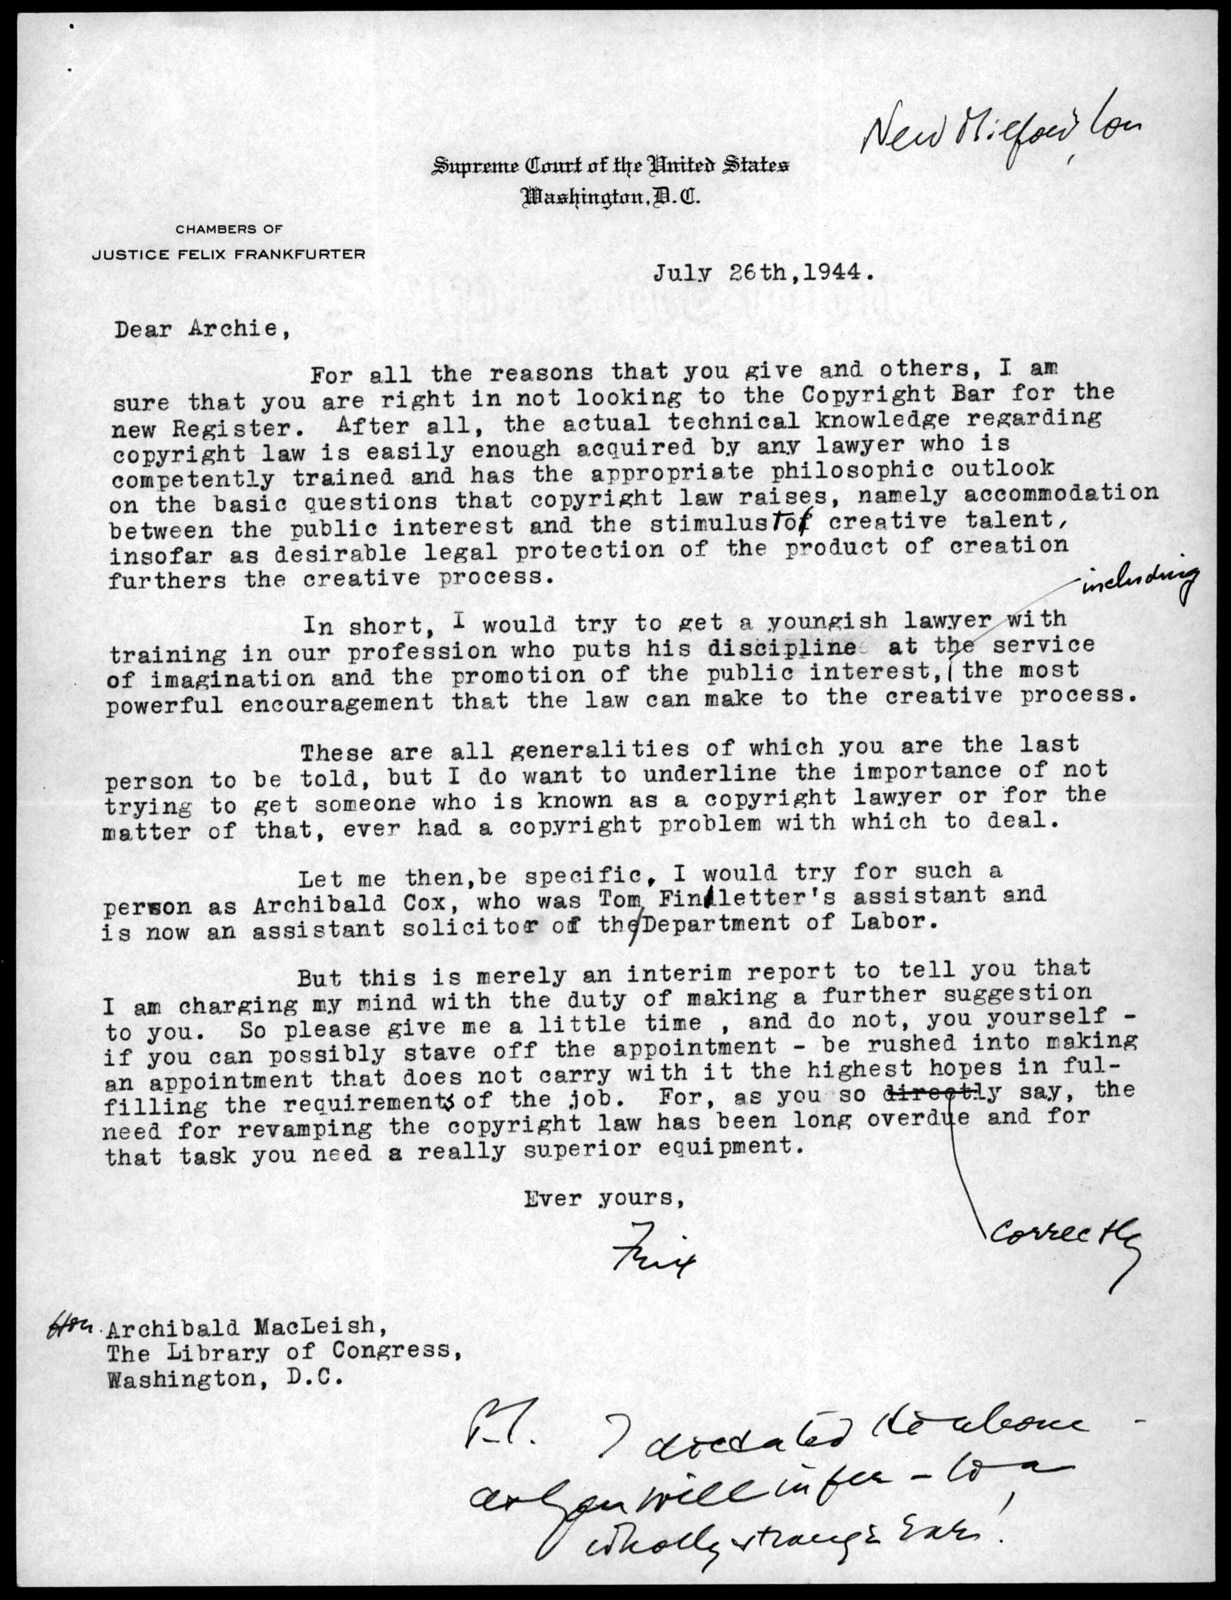 Letter from Felix Frankfurter to Archibald MacLeish, July 26, 1944